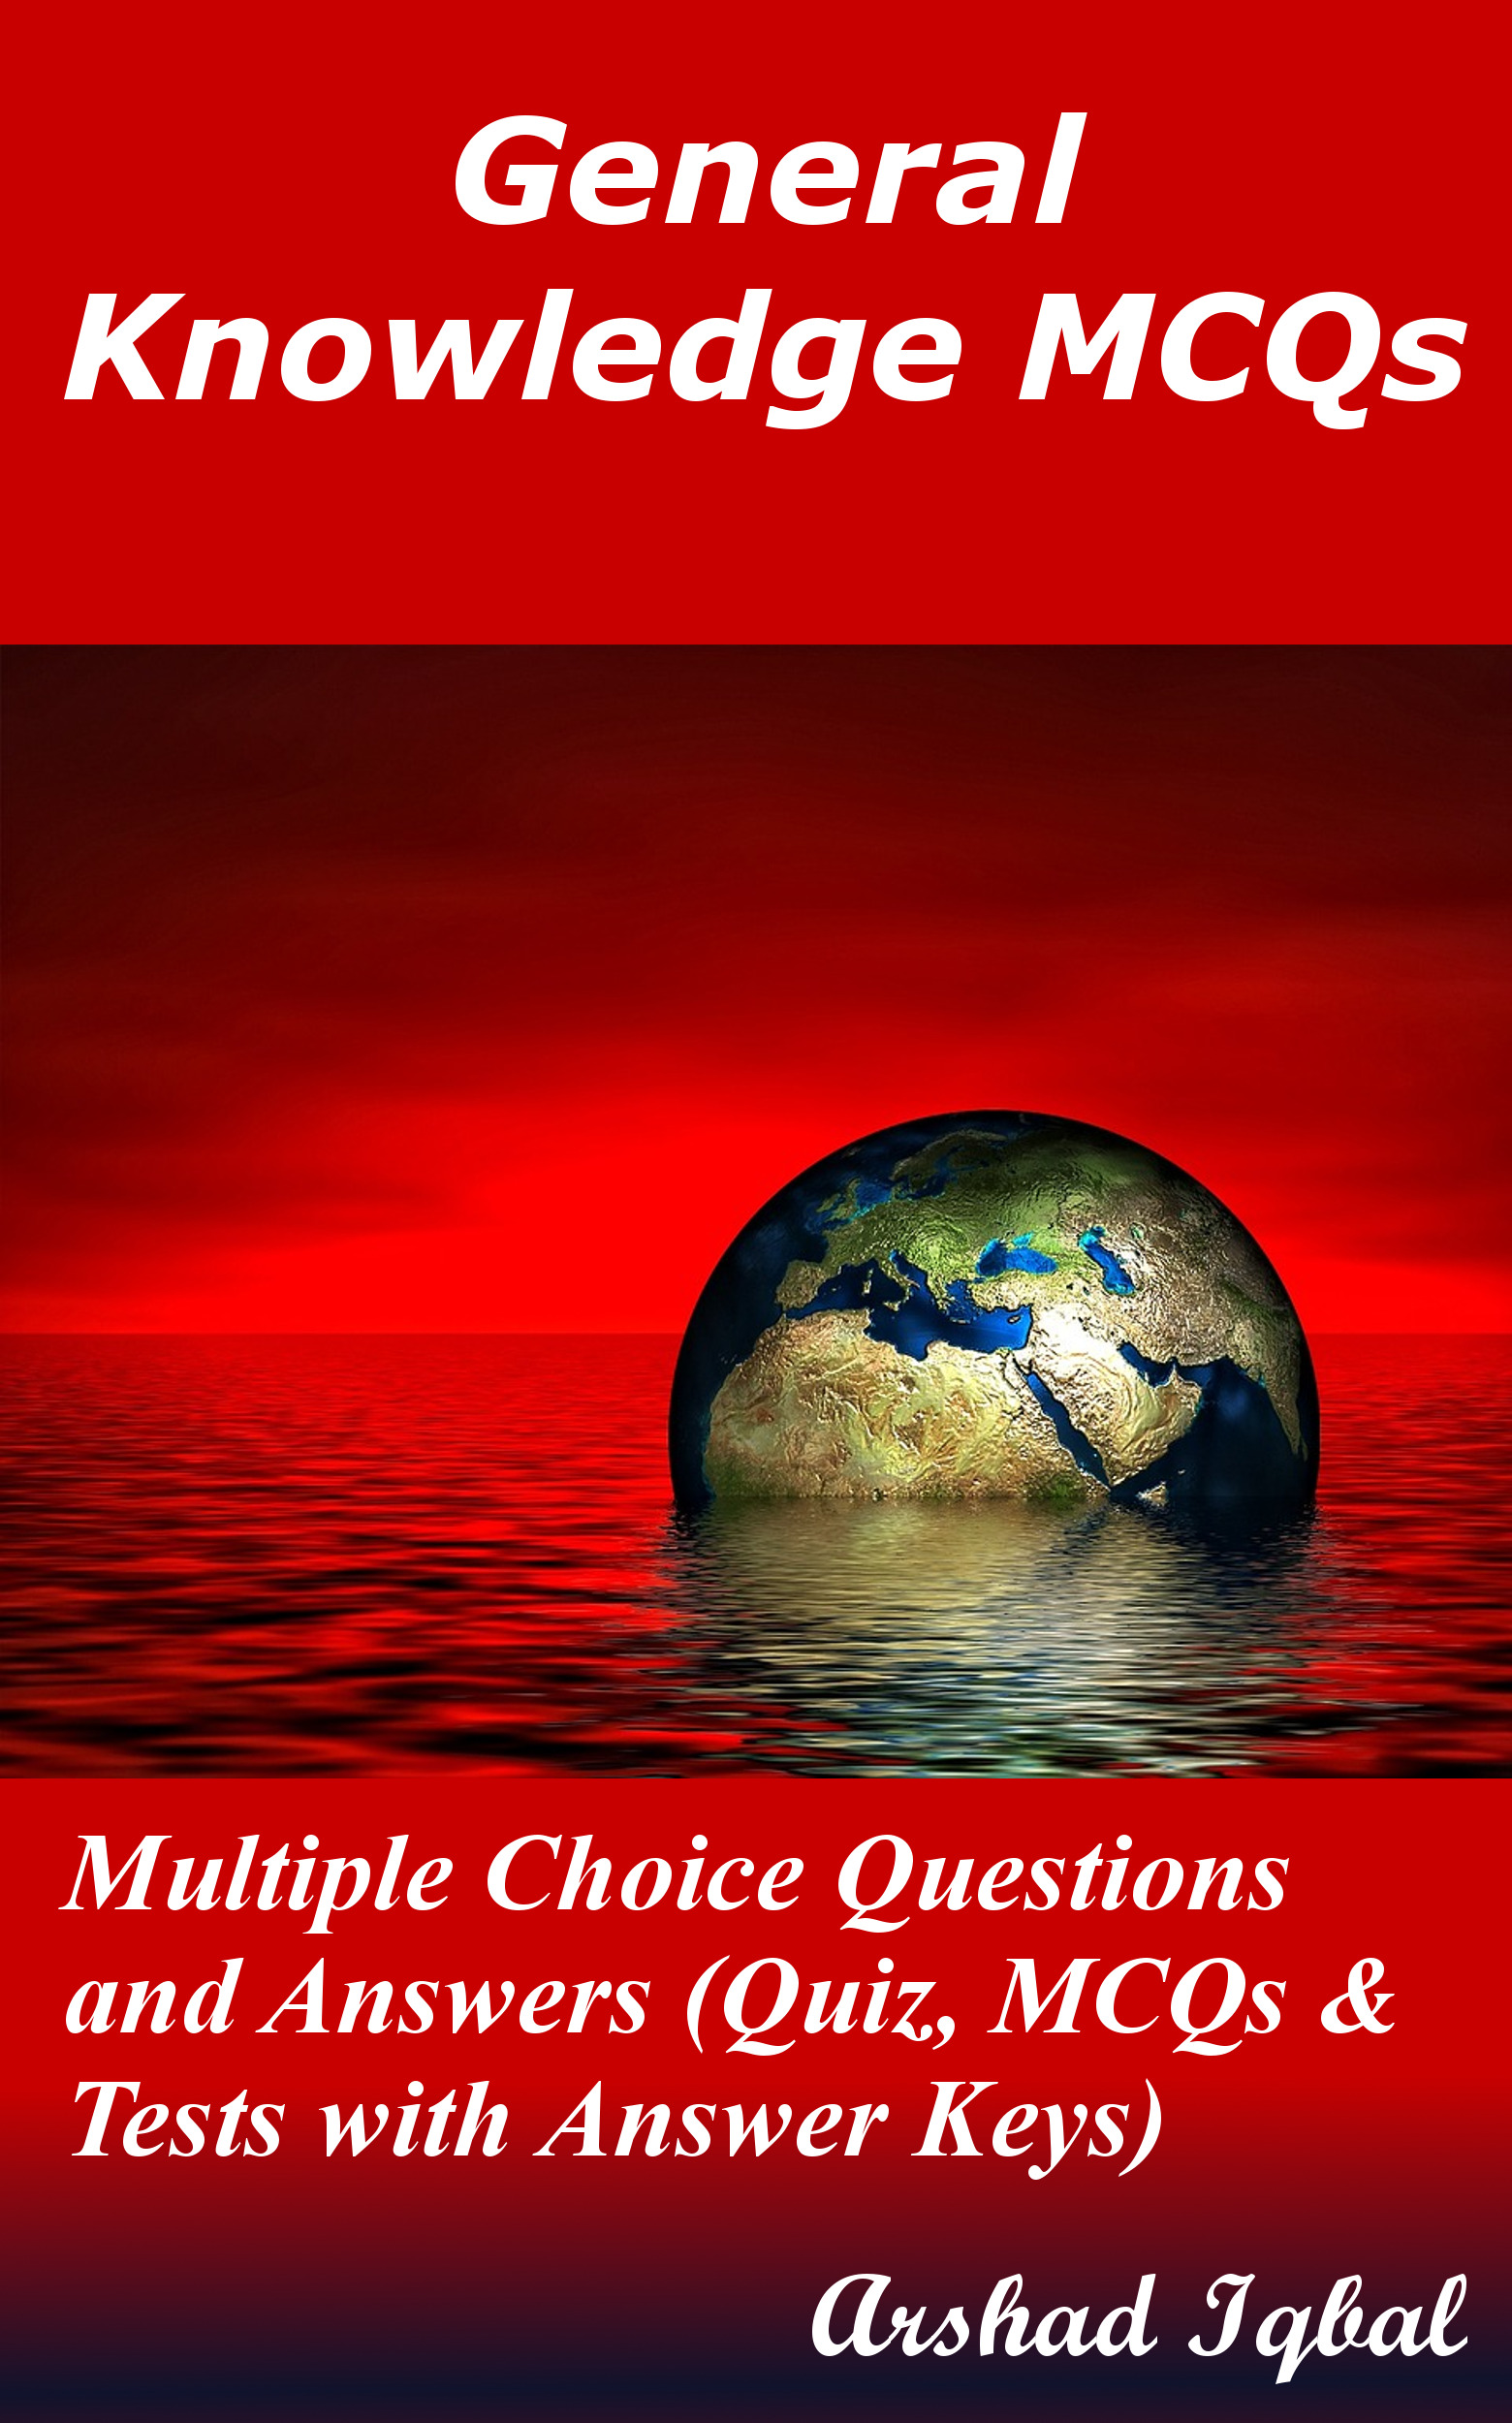 General Knowledge MCQs: Multiple Choice Questions and Answers (Quiz, MCQs &  Tests with Answer Keys), an Ebook by Arshad Iqbal